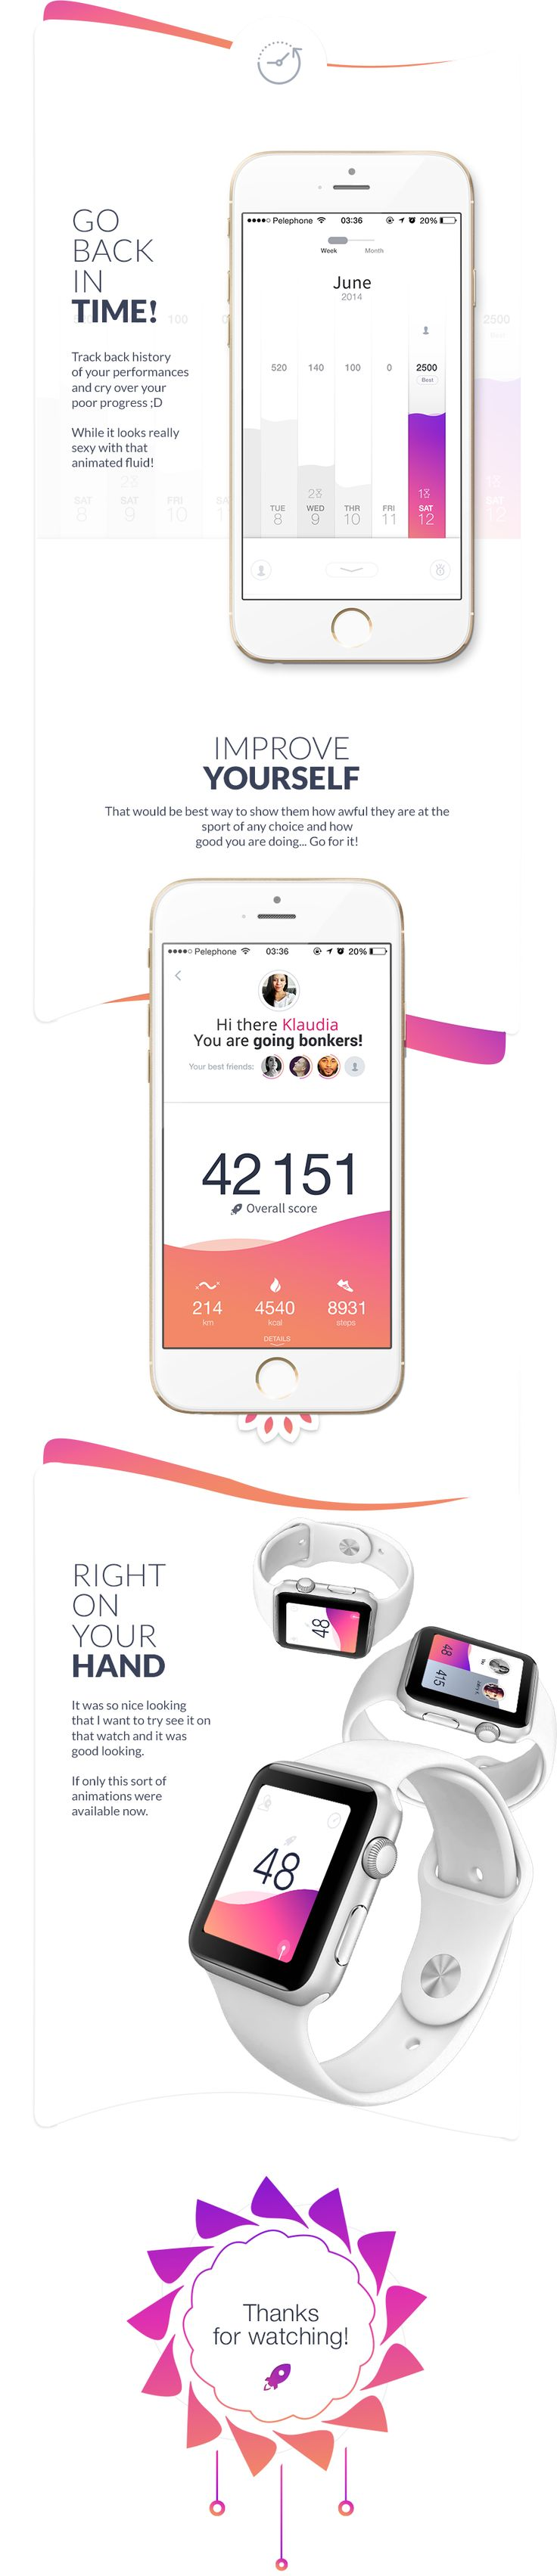 Hey guys, This time I present to you project for health/fitness app I've produced around year ago for a client that didn't really used this UI. I liked how it came out so I'm sharing it with you now.